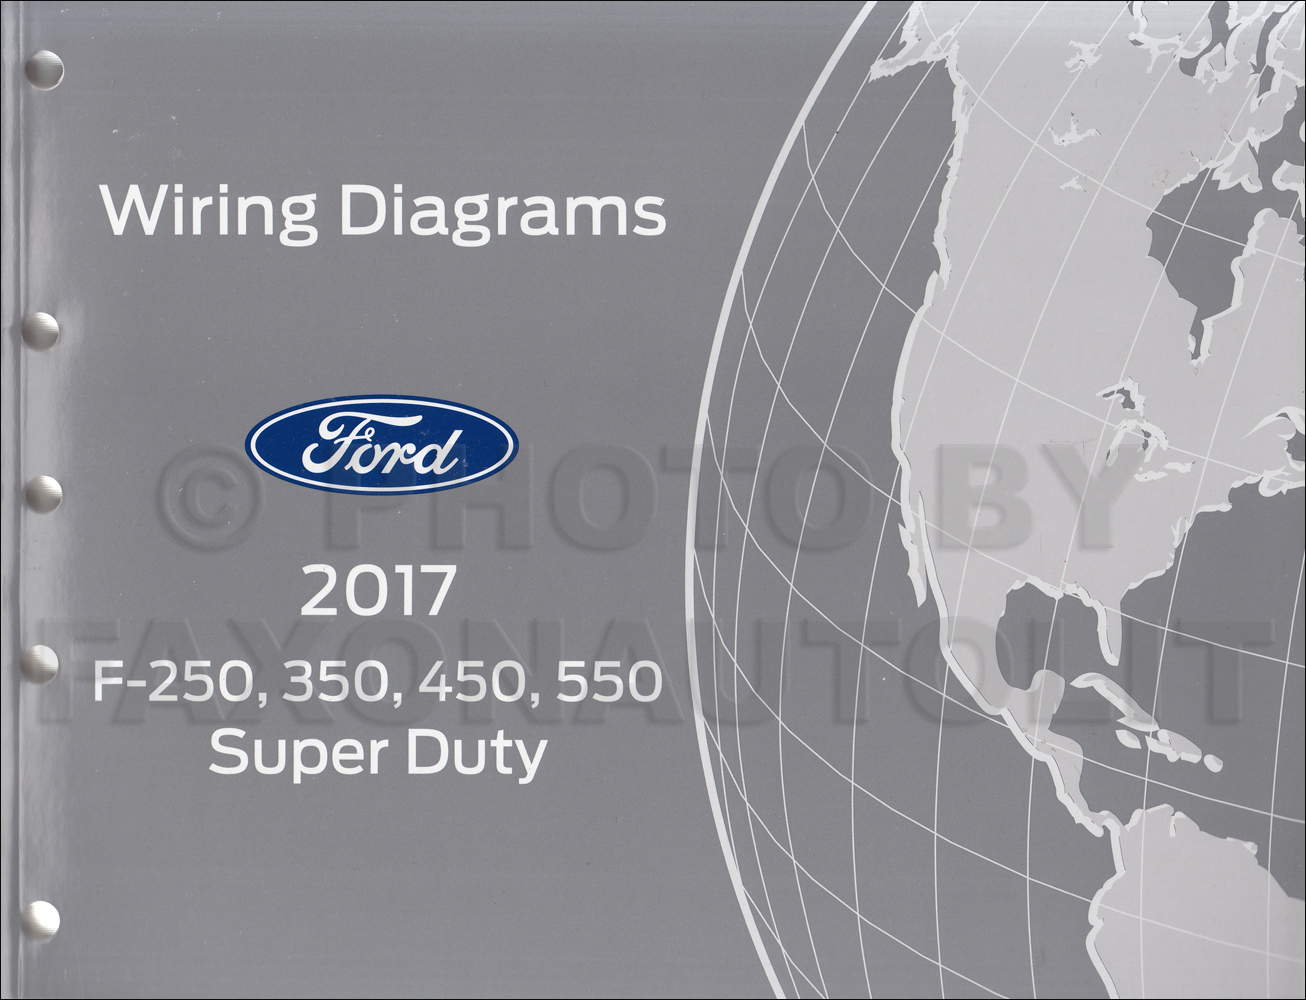 2017 Ford F250-F550 Super DutyTruck Wiring Diagram Manual Original F Cab Light Wiring Diagram on